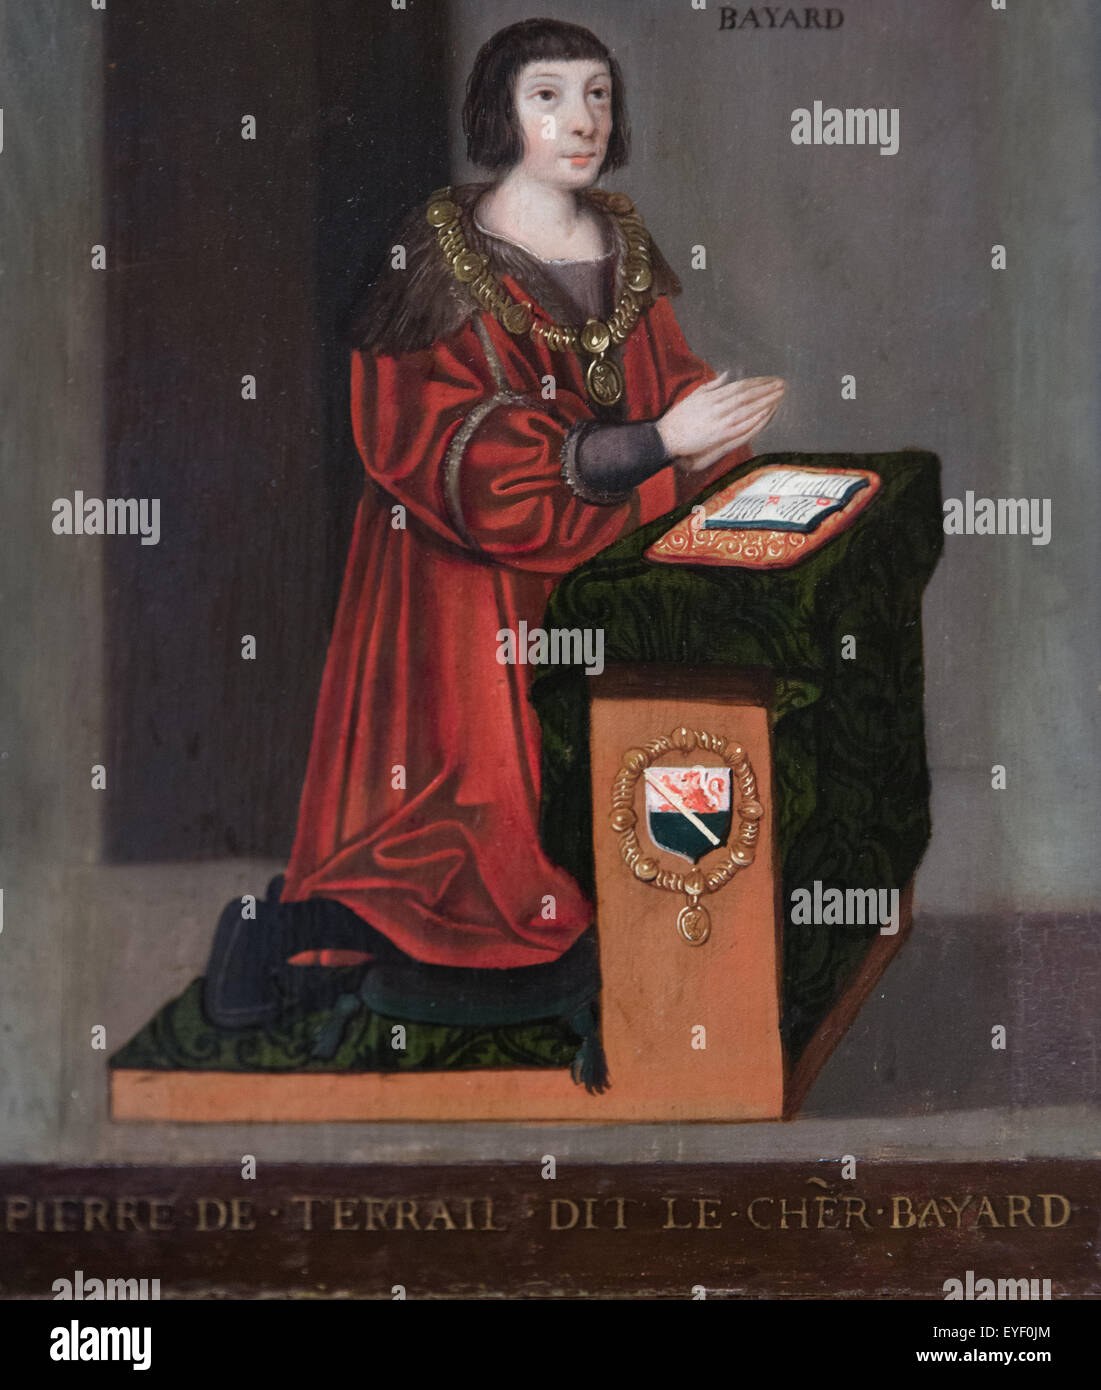 Pierre of Terrail, Lord of Bayard (1475-1524) 07/12/2013 - 16th century Collection - Stock Image